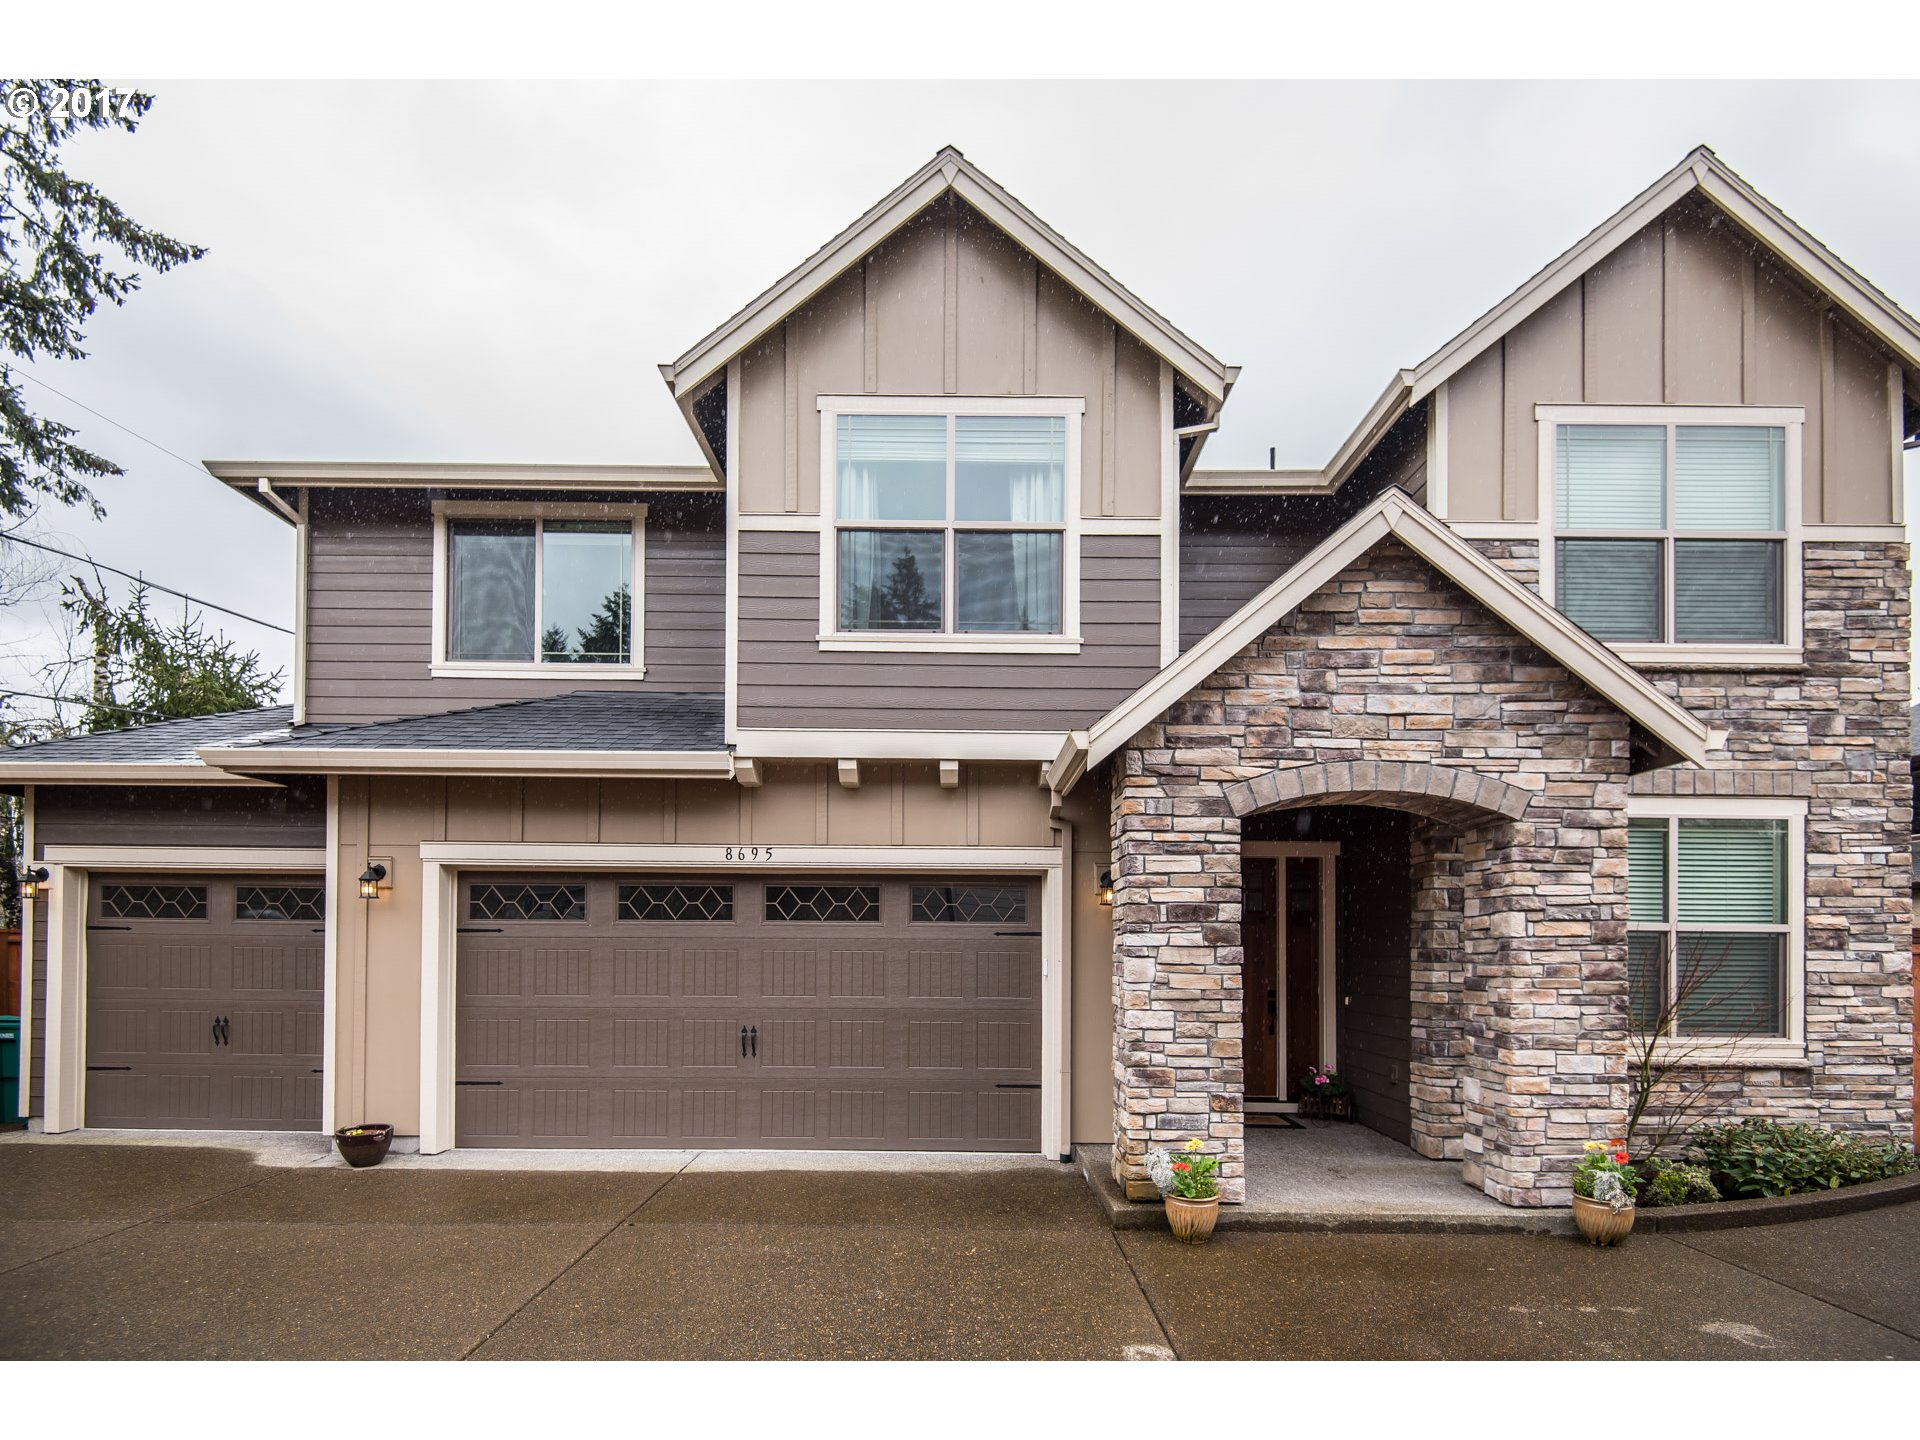 8695 SW 155TH AVE, Beaverton, OR 97007